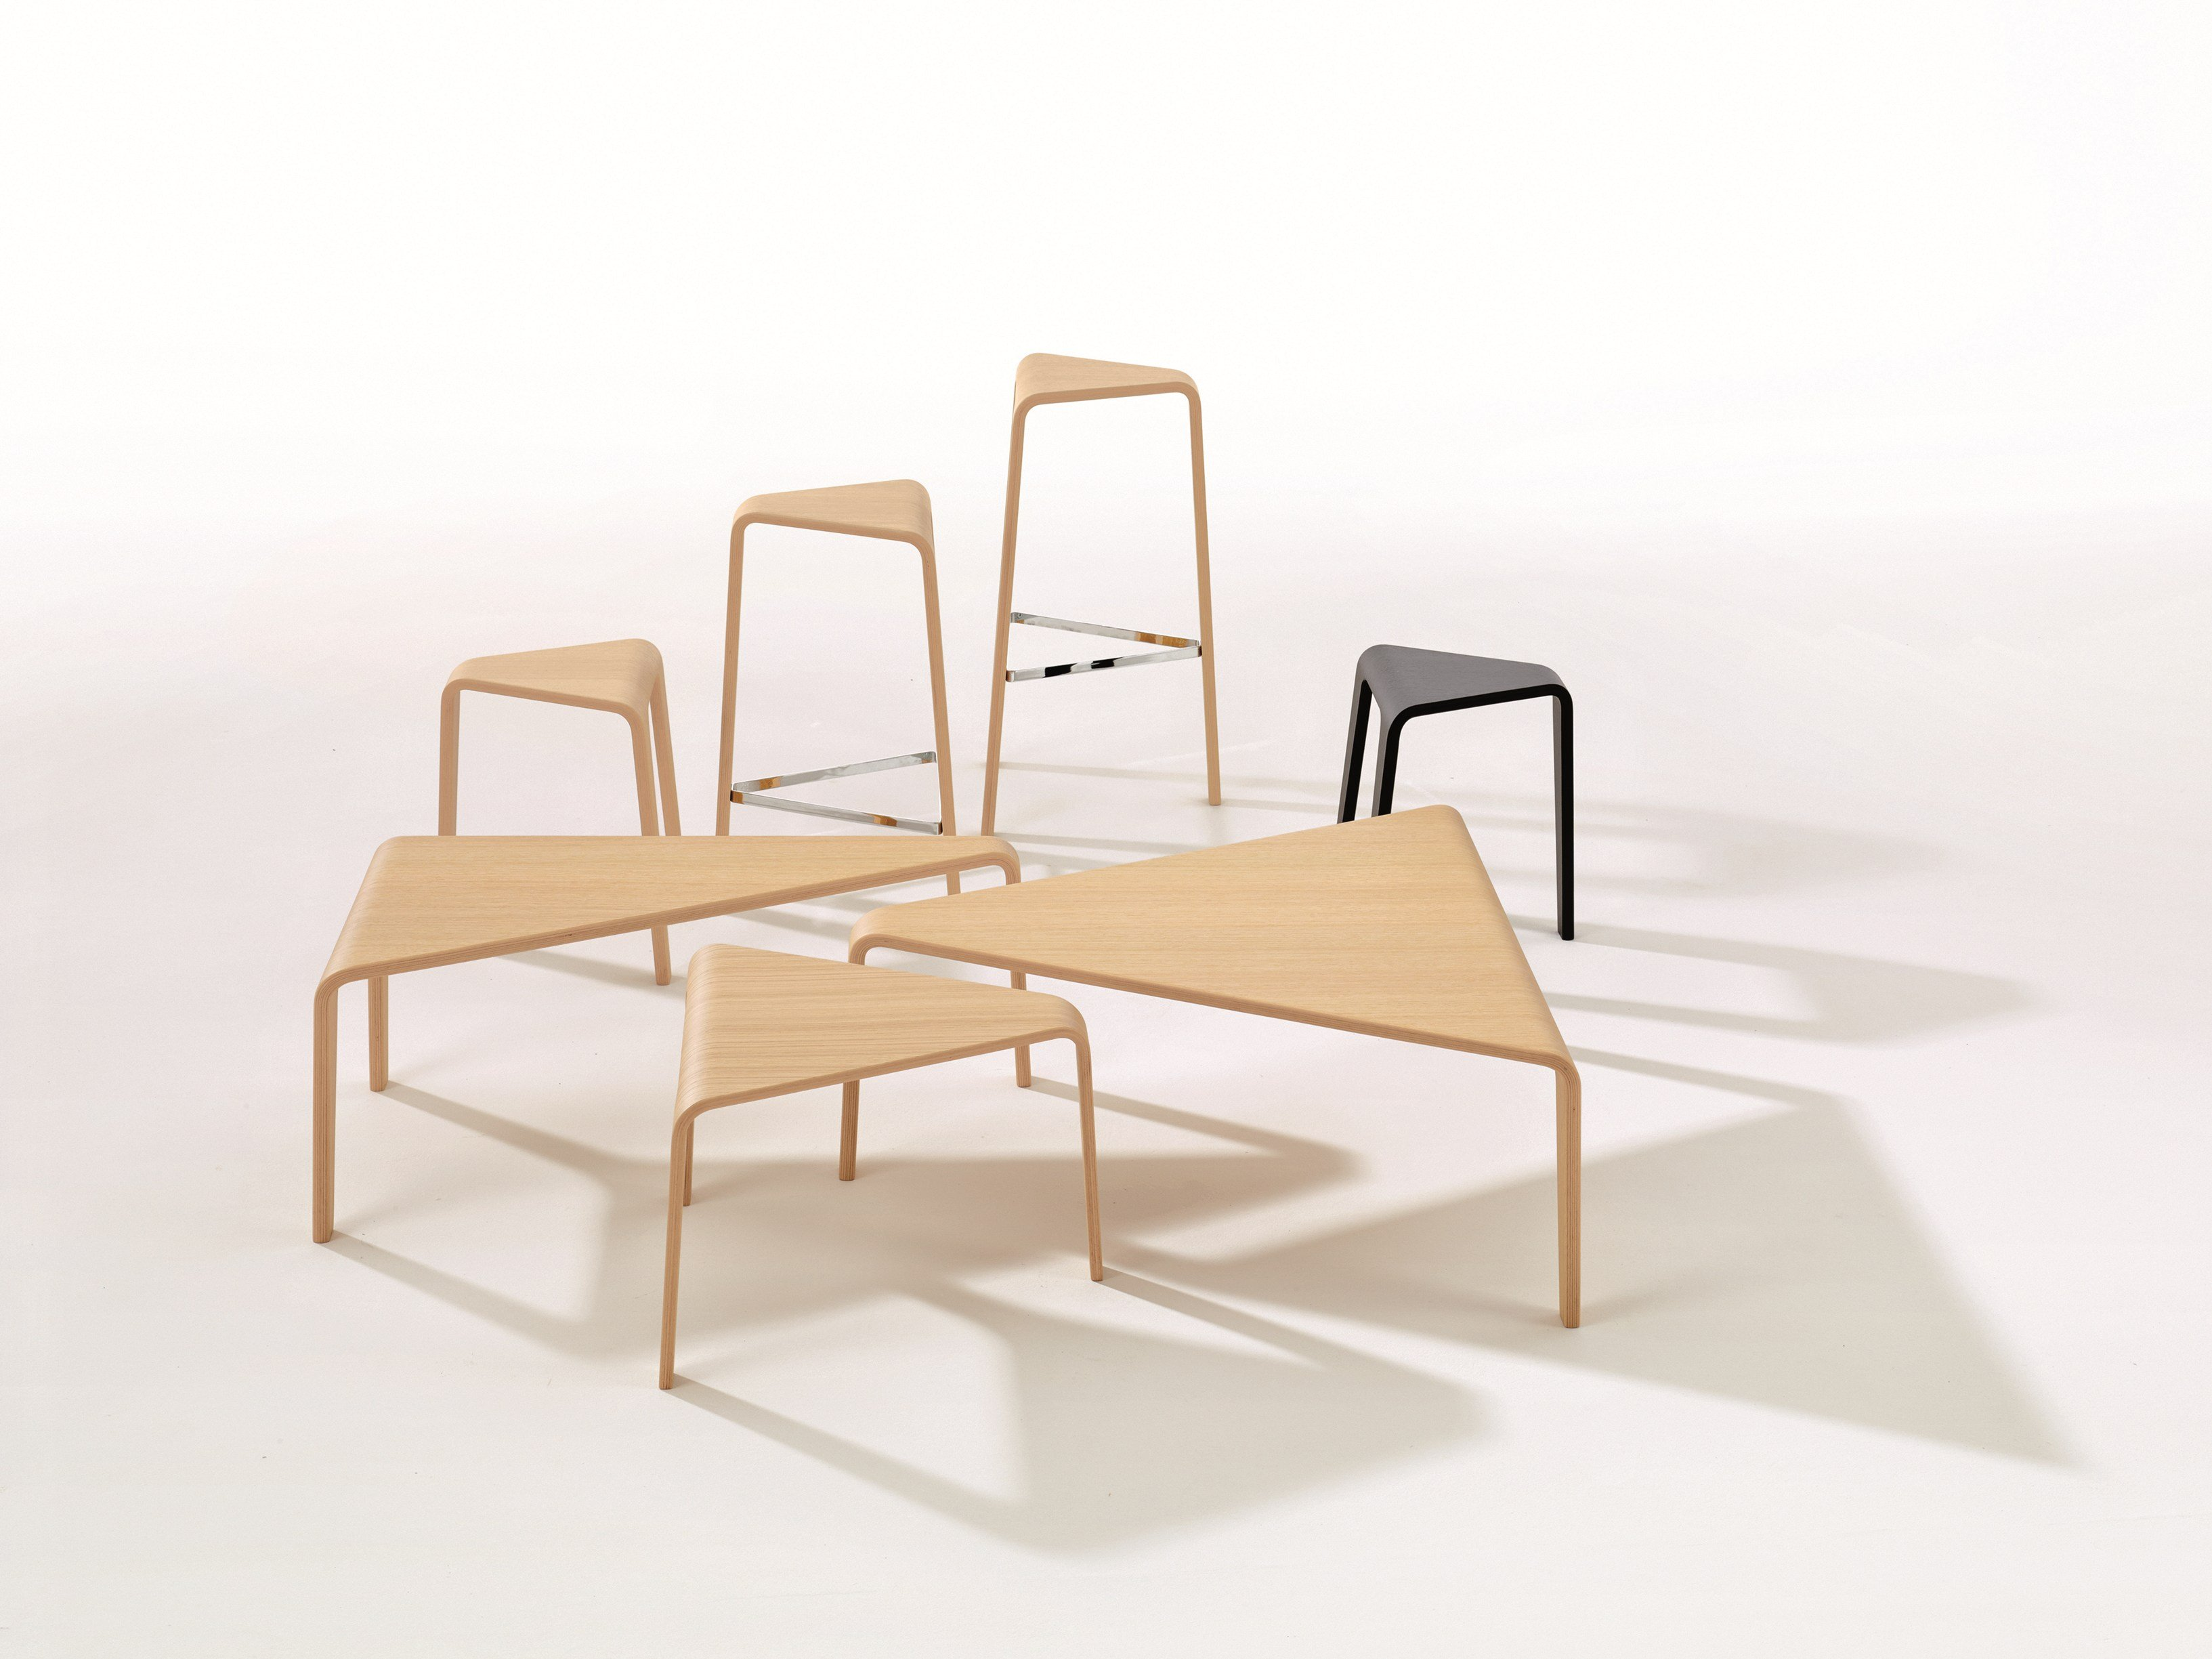 ply  low stool by arper design lievore altherr molina -